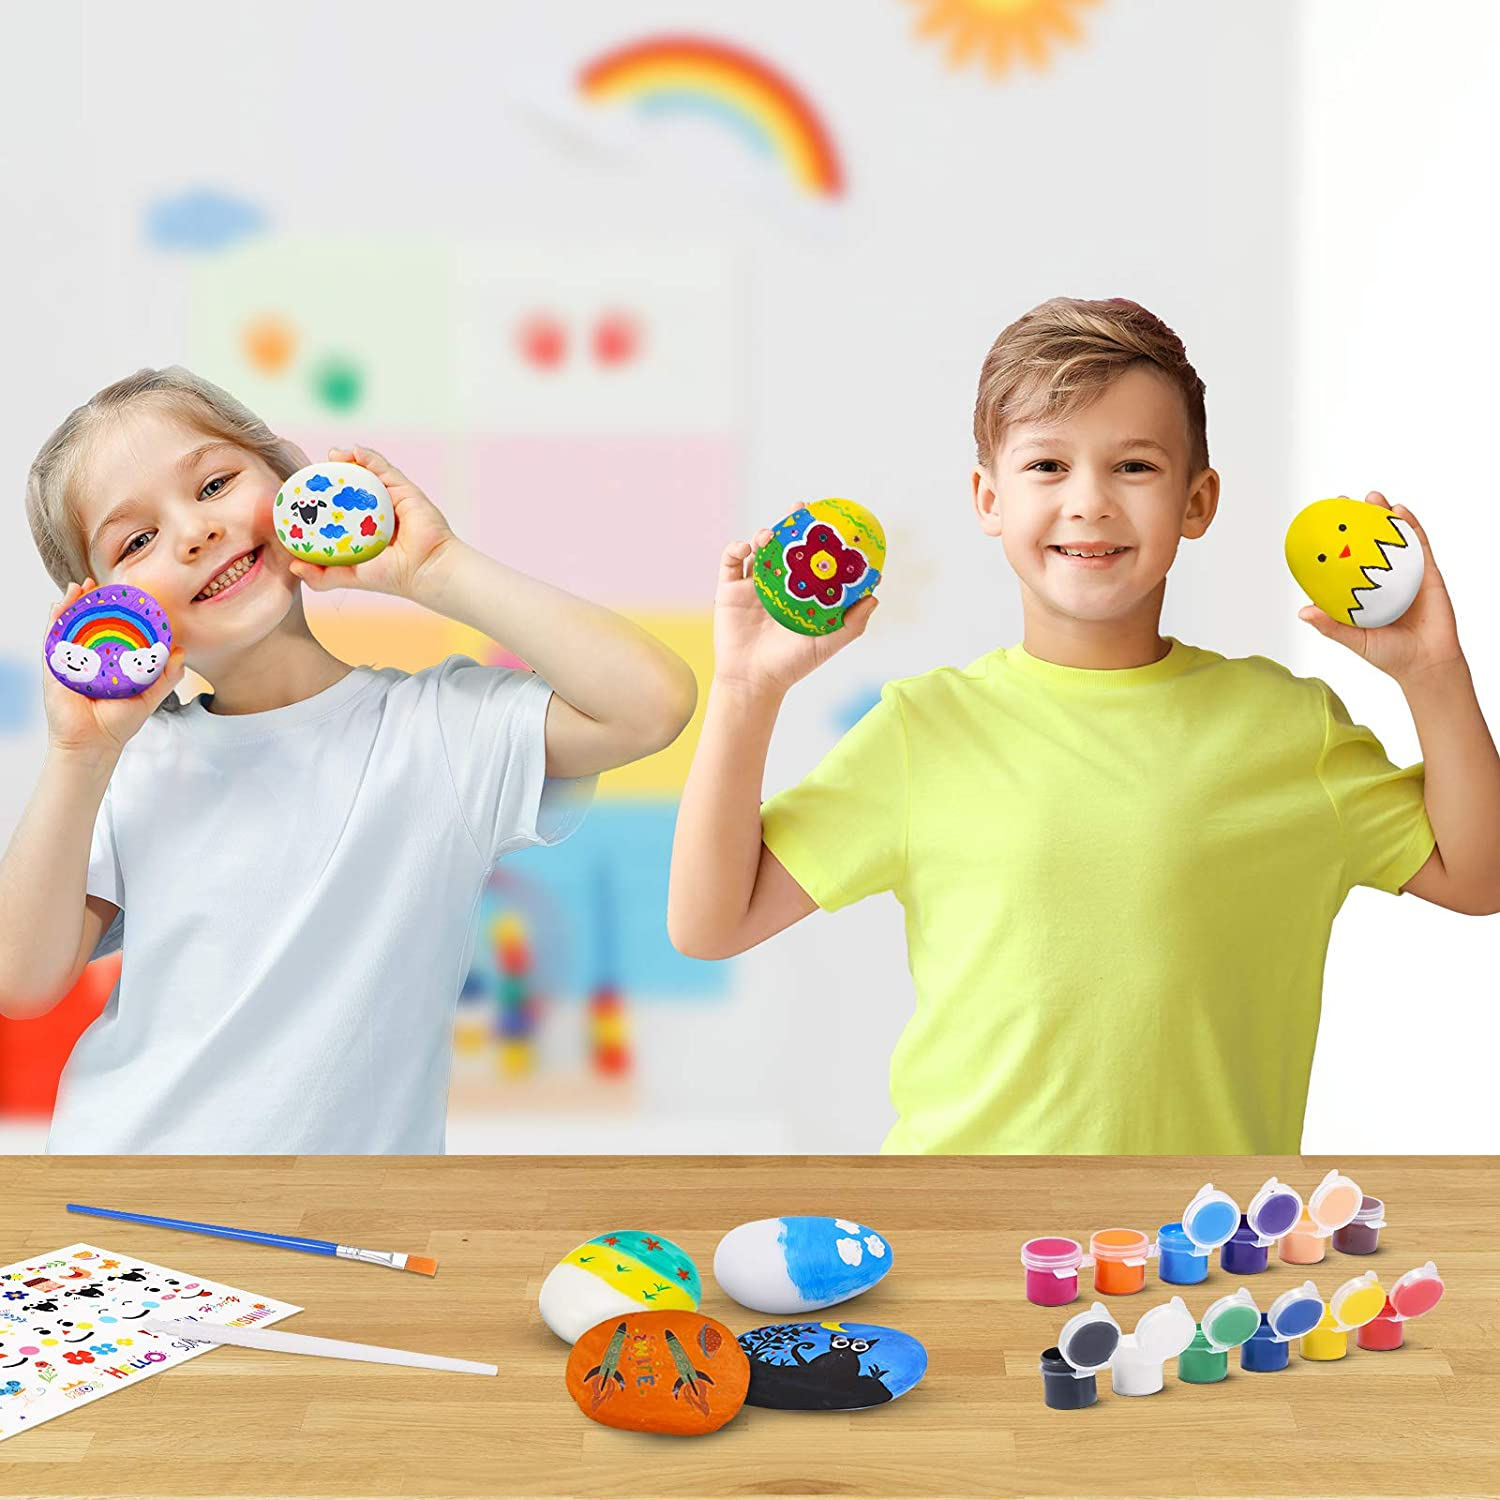 Dreamingbox Arts and Crafts for Kids Plastic Rock Painting Kit Toys Arts Gifts